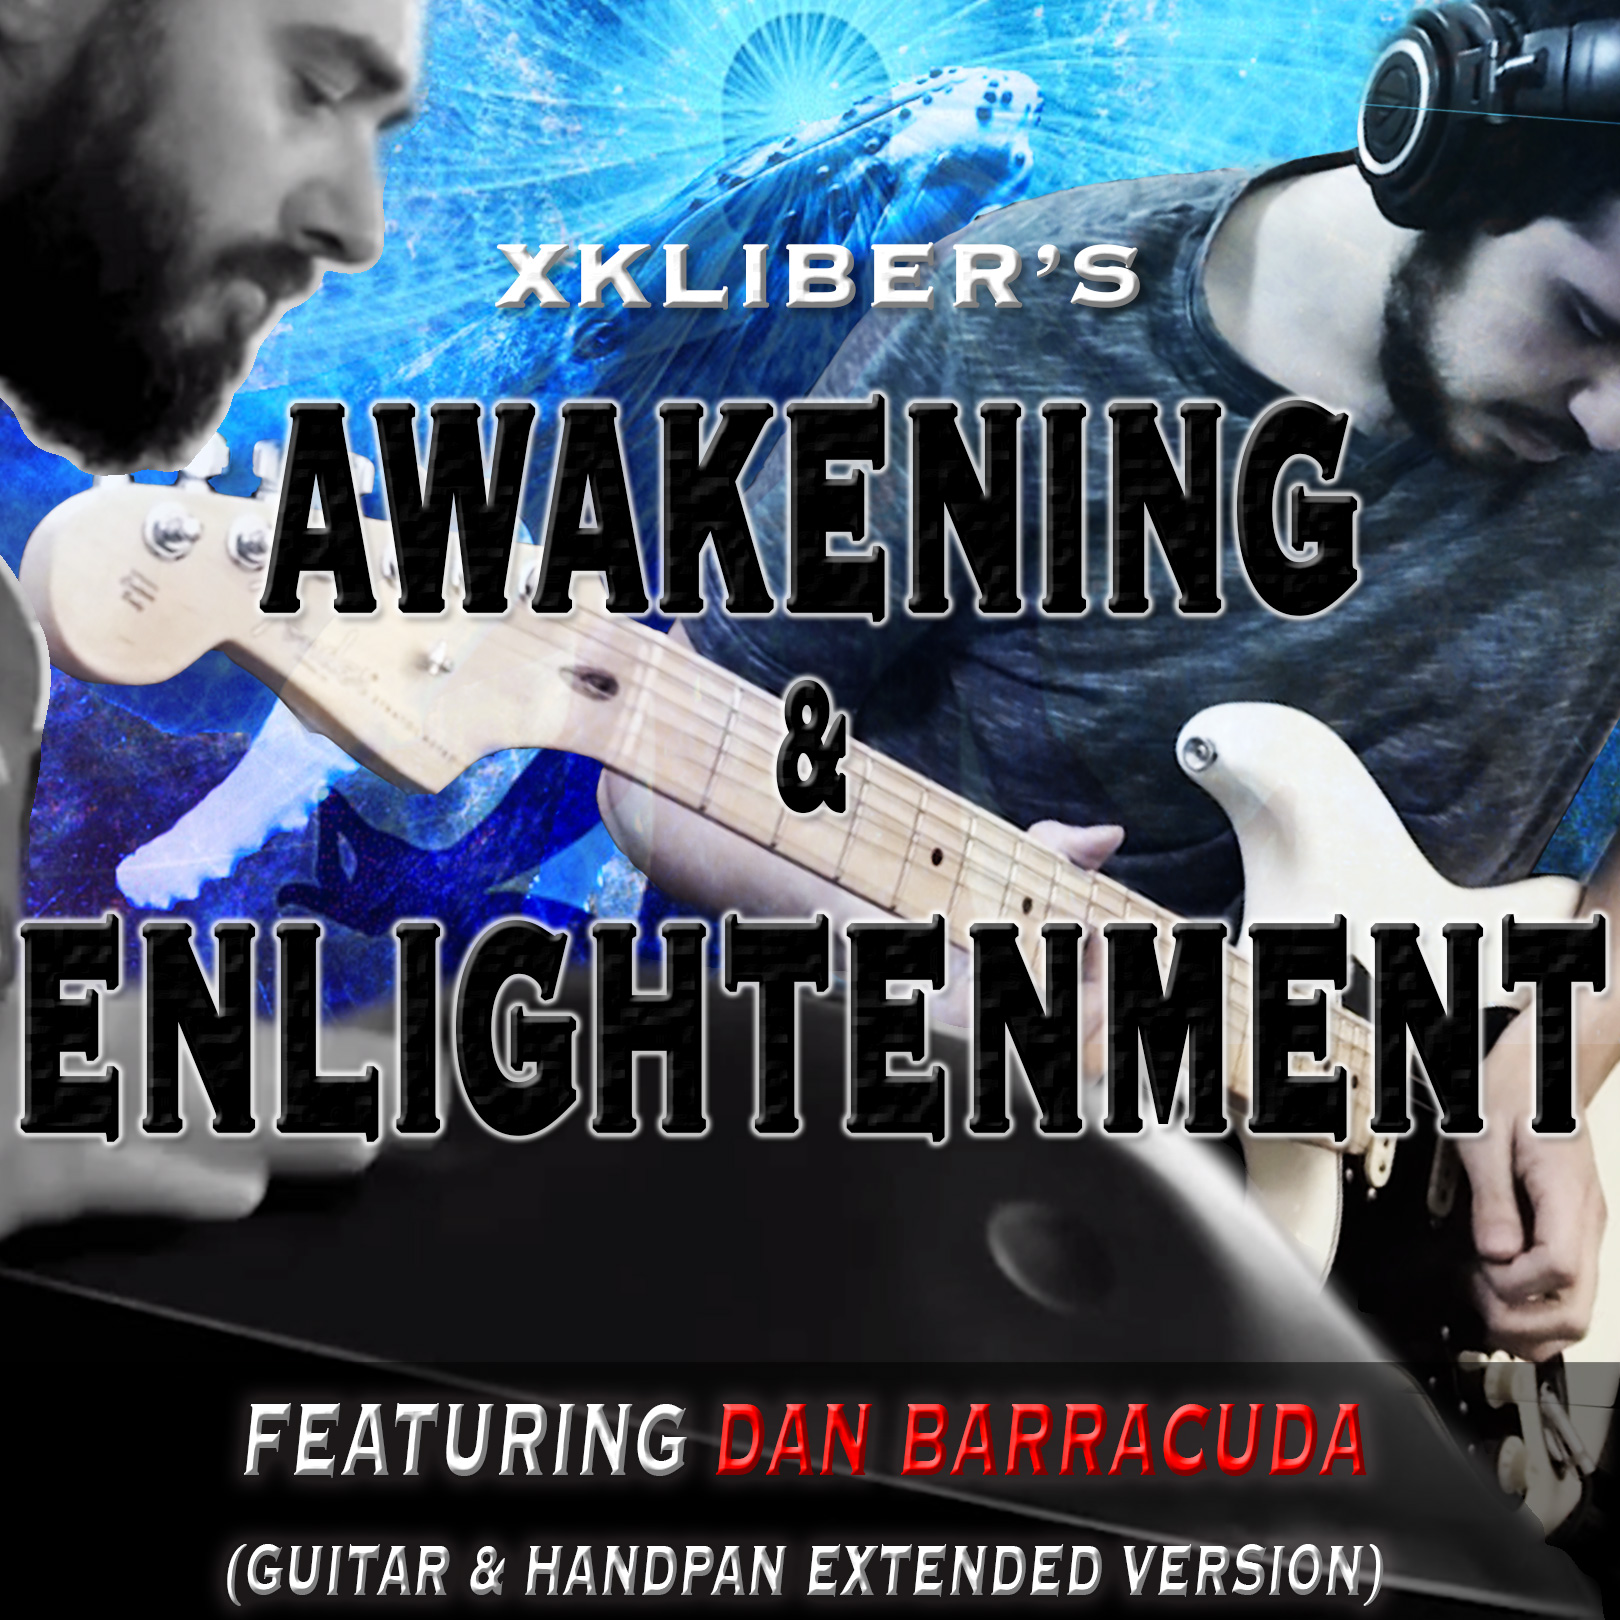 Awakening & Enlightenment - xkliber (feat. Dan Barracuda - Guitar & Handpan extended version) - square-version-for-cover